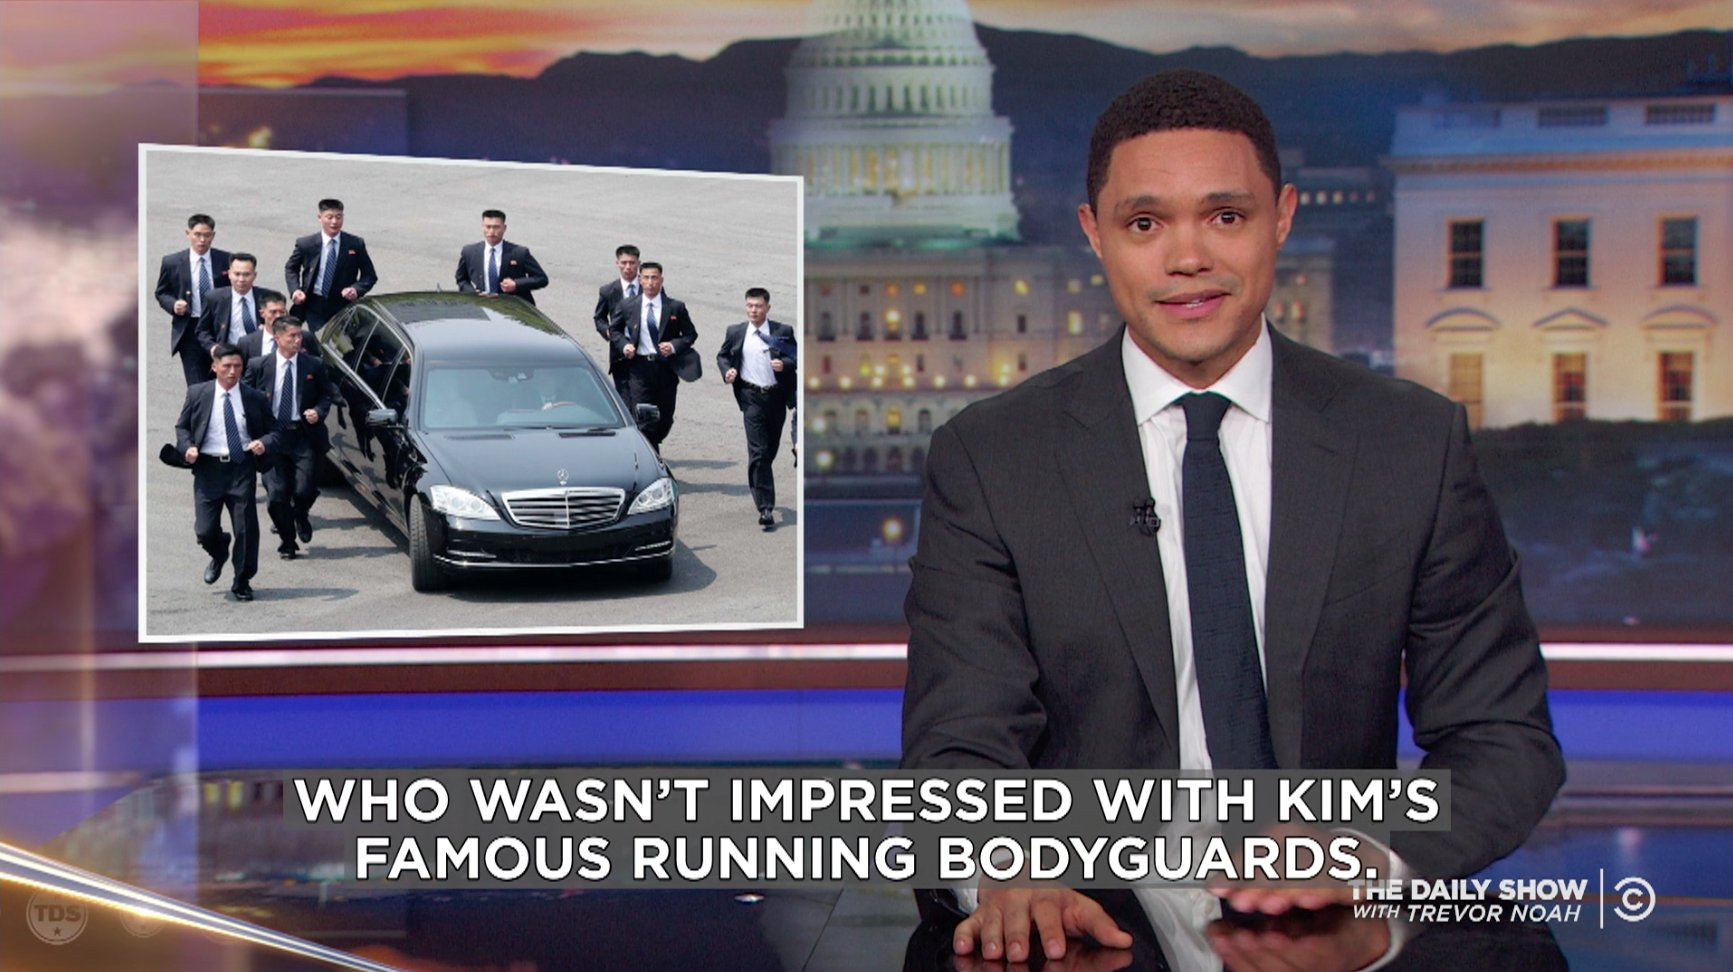 .@TheDailyShow looks into what it takes to be one of Kim Jong-un's famous running bodyguards. https://t.co/oaek0ZsFyx